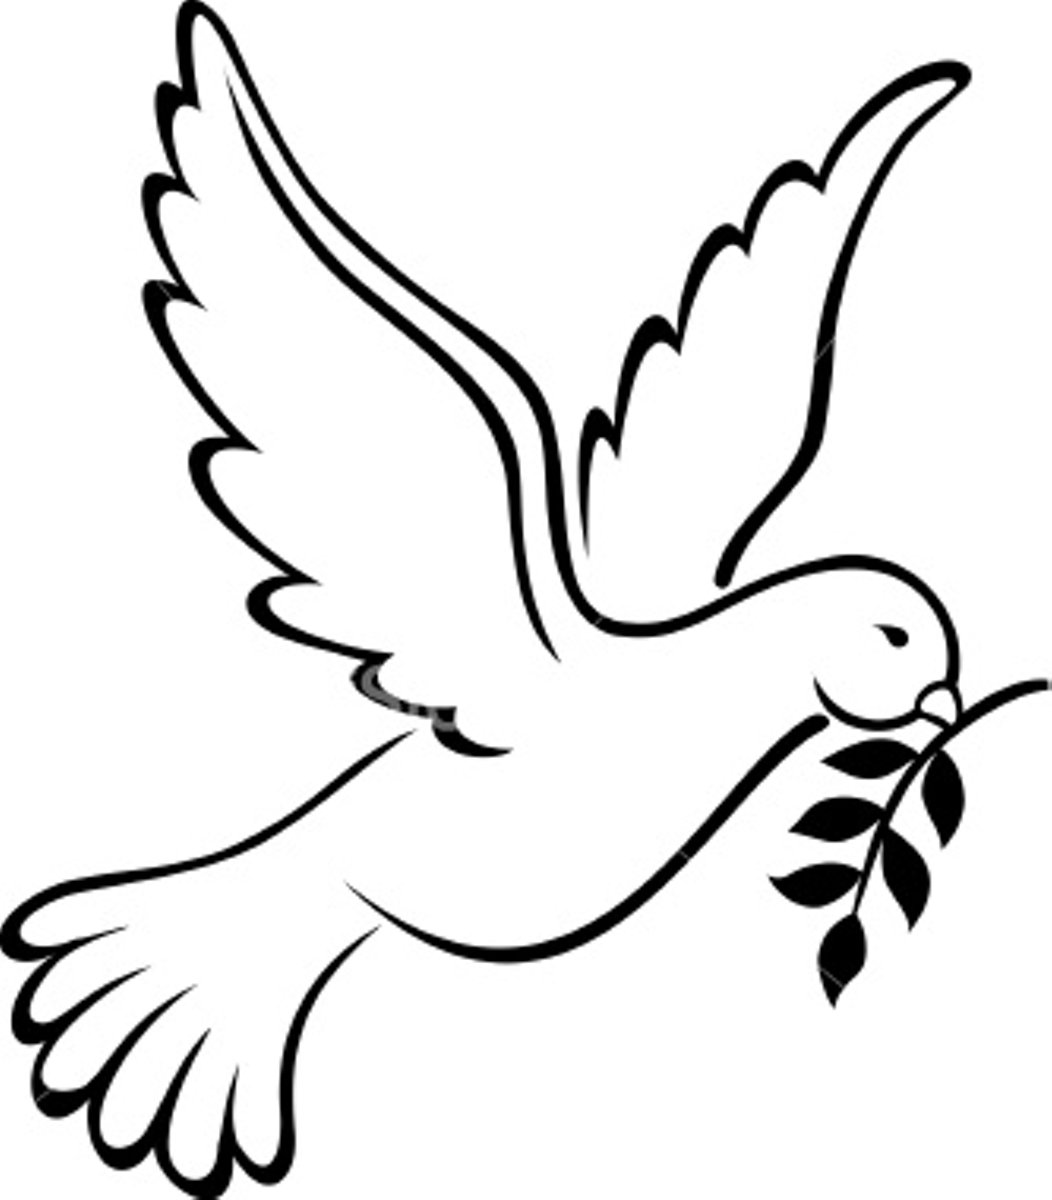 Peace Sign clipart dove Panda Free Images Clipart Clipart